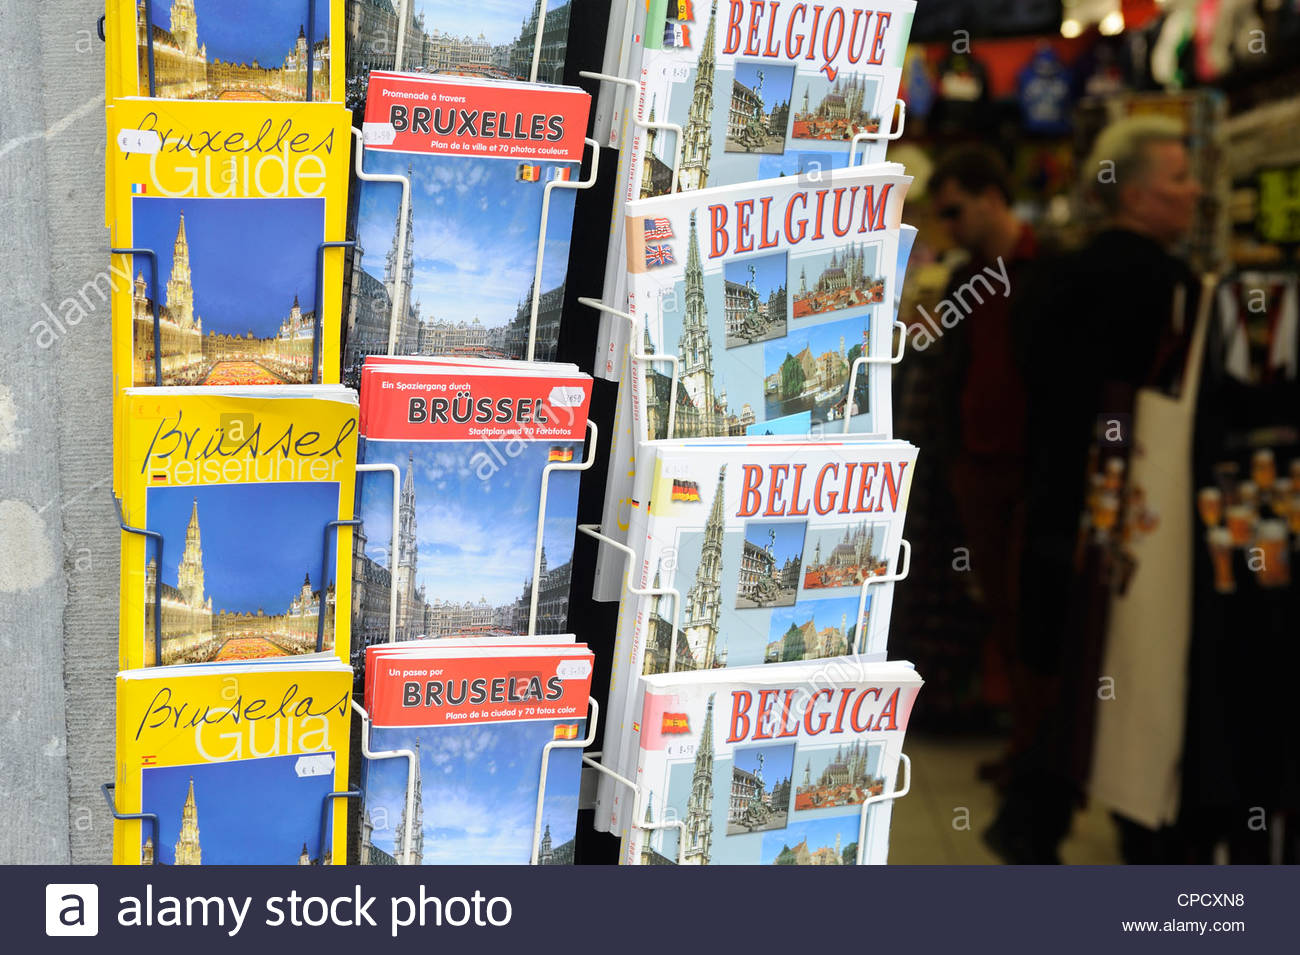 Brussels, Belgium Travel guides in many languages in a souvenir shop. - Stock Image